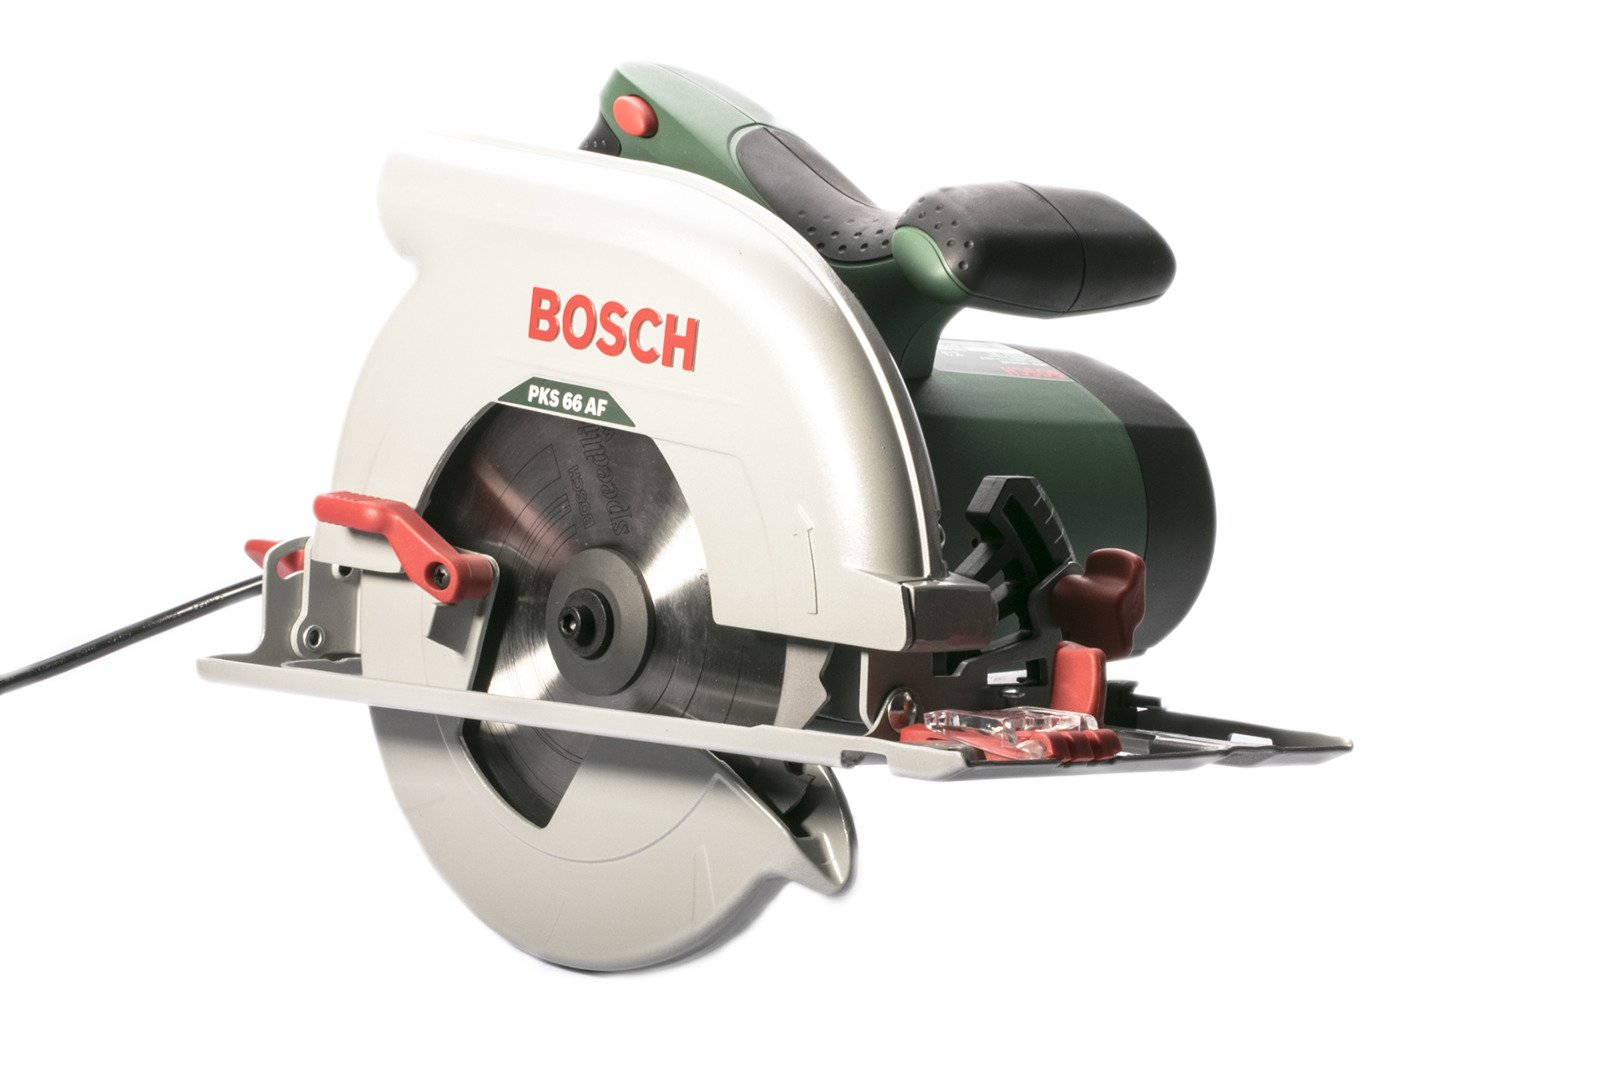 bosch pks 66 af hand held circular saw new. Black Bedroom Furniture Sets. Home Design Ideas